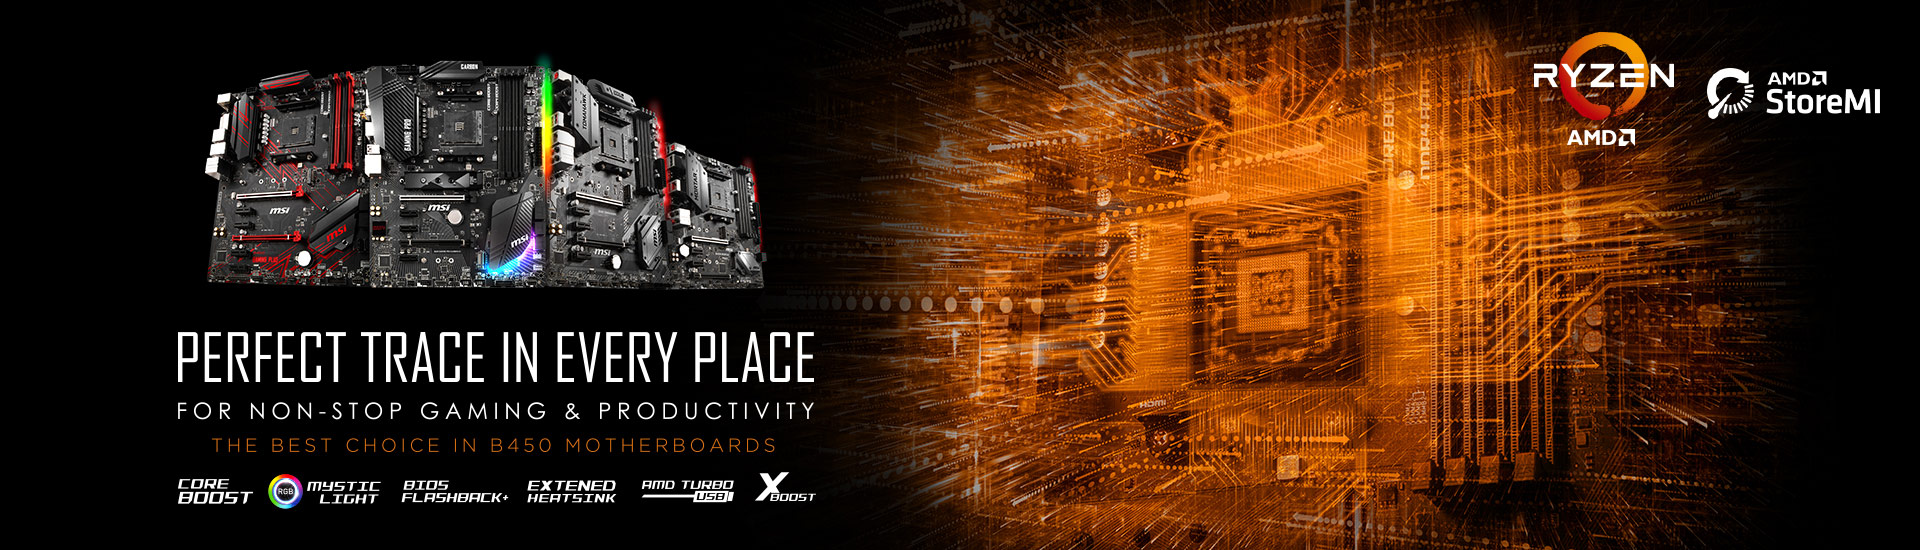 PERFECT TRACE IN EVERY PLACE, MSI Releases B450 Motherboards for New